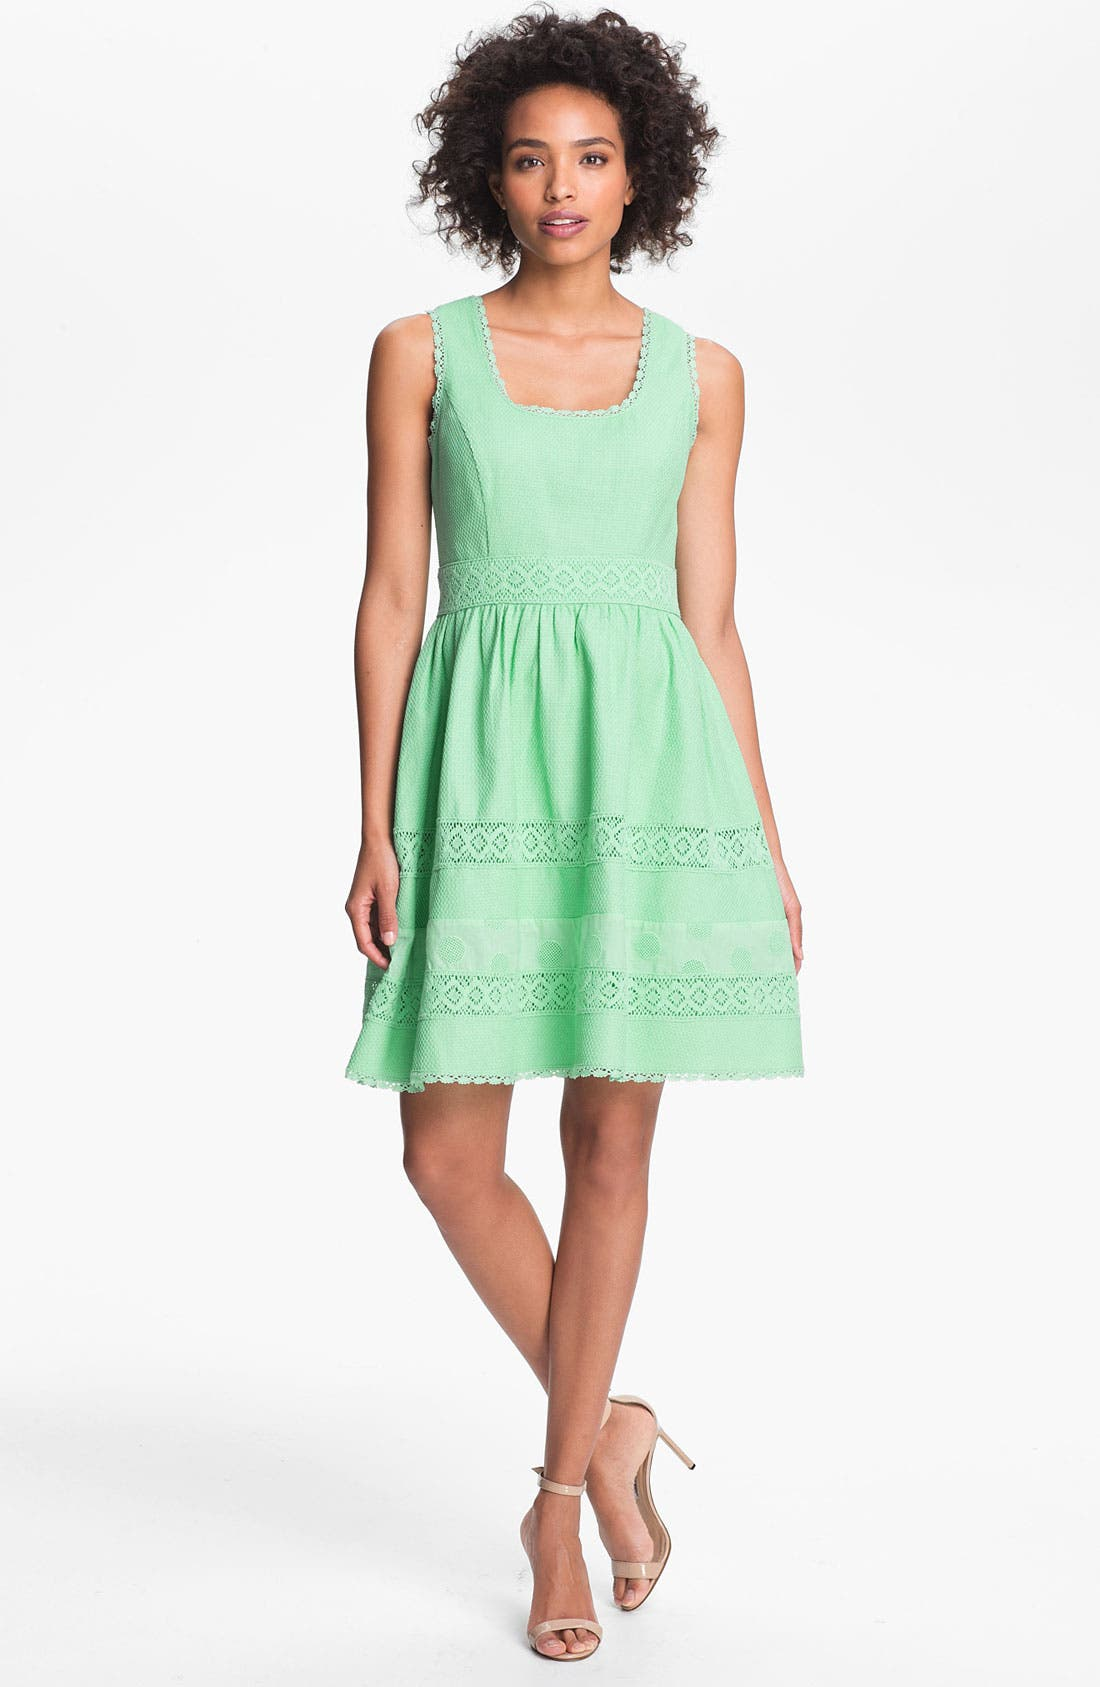 Main Image - Jessica Simpson Basket Weave Fit & Flare Dress